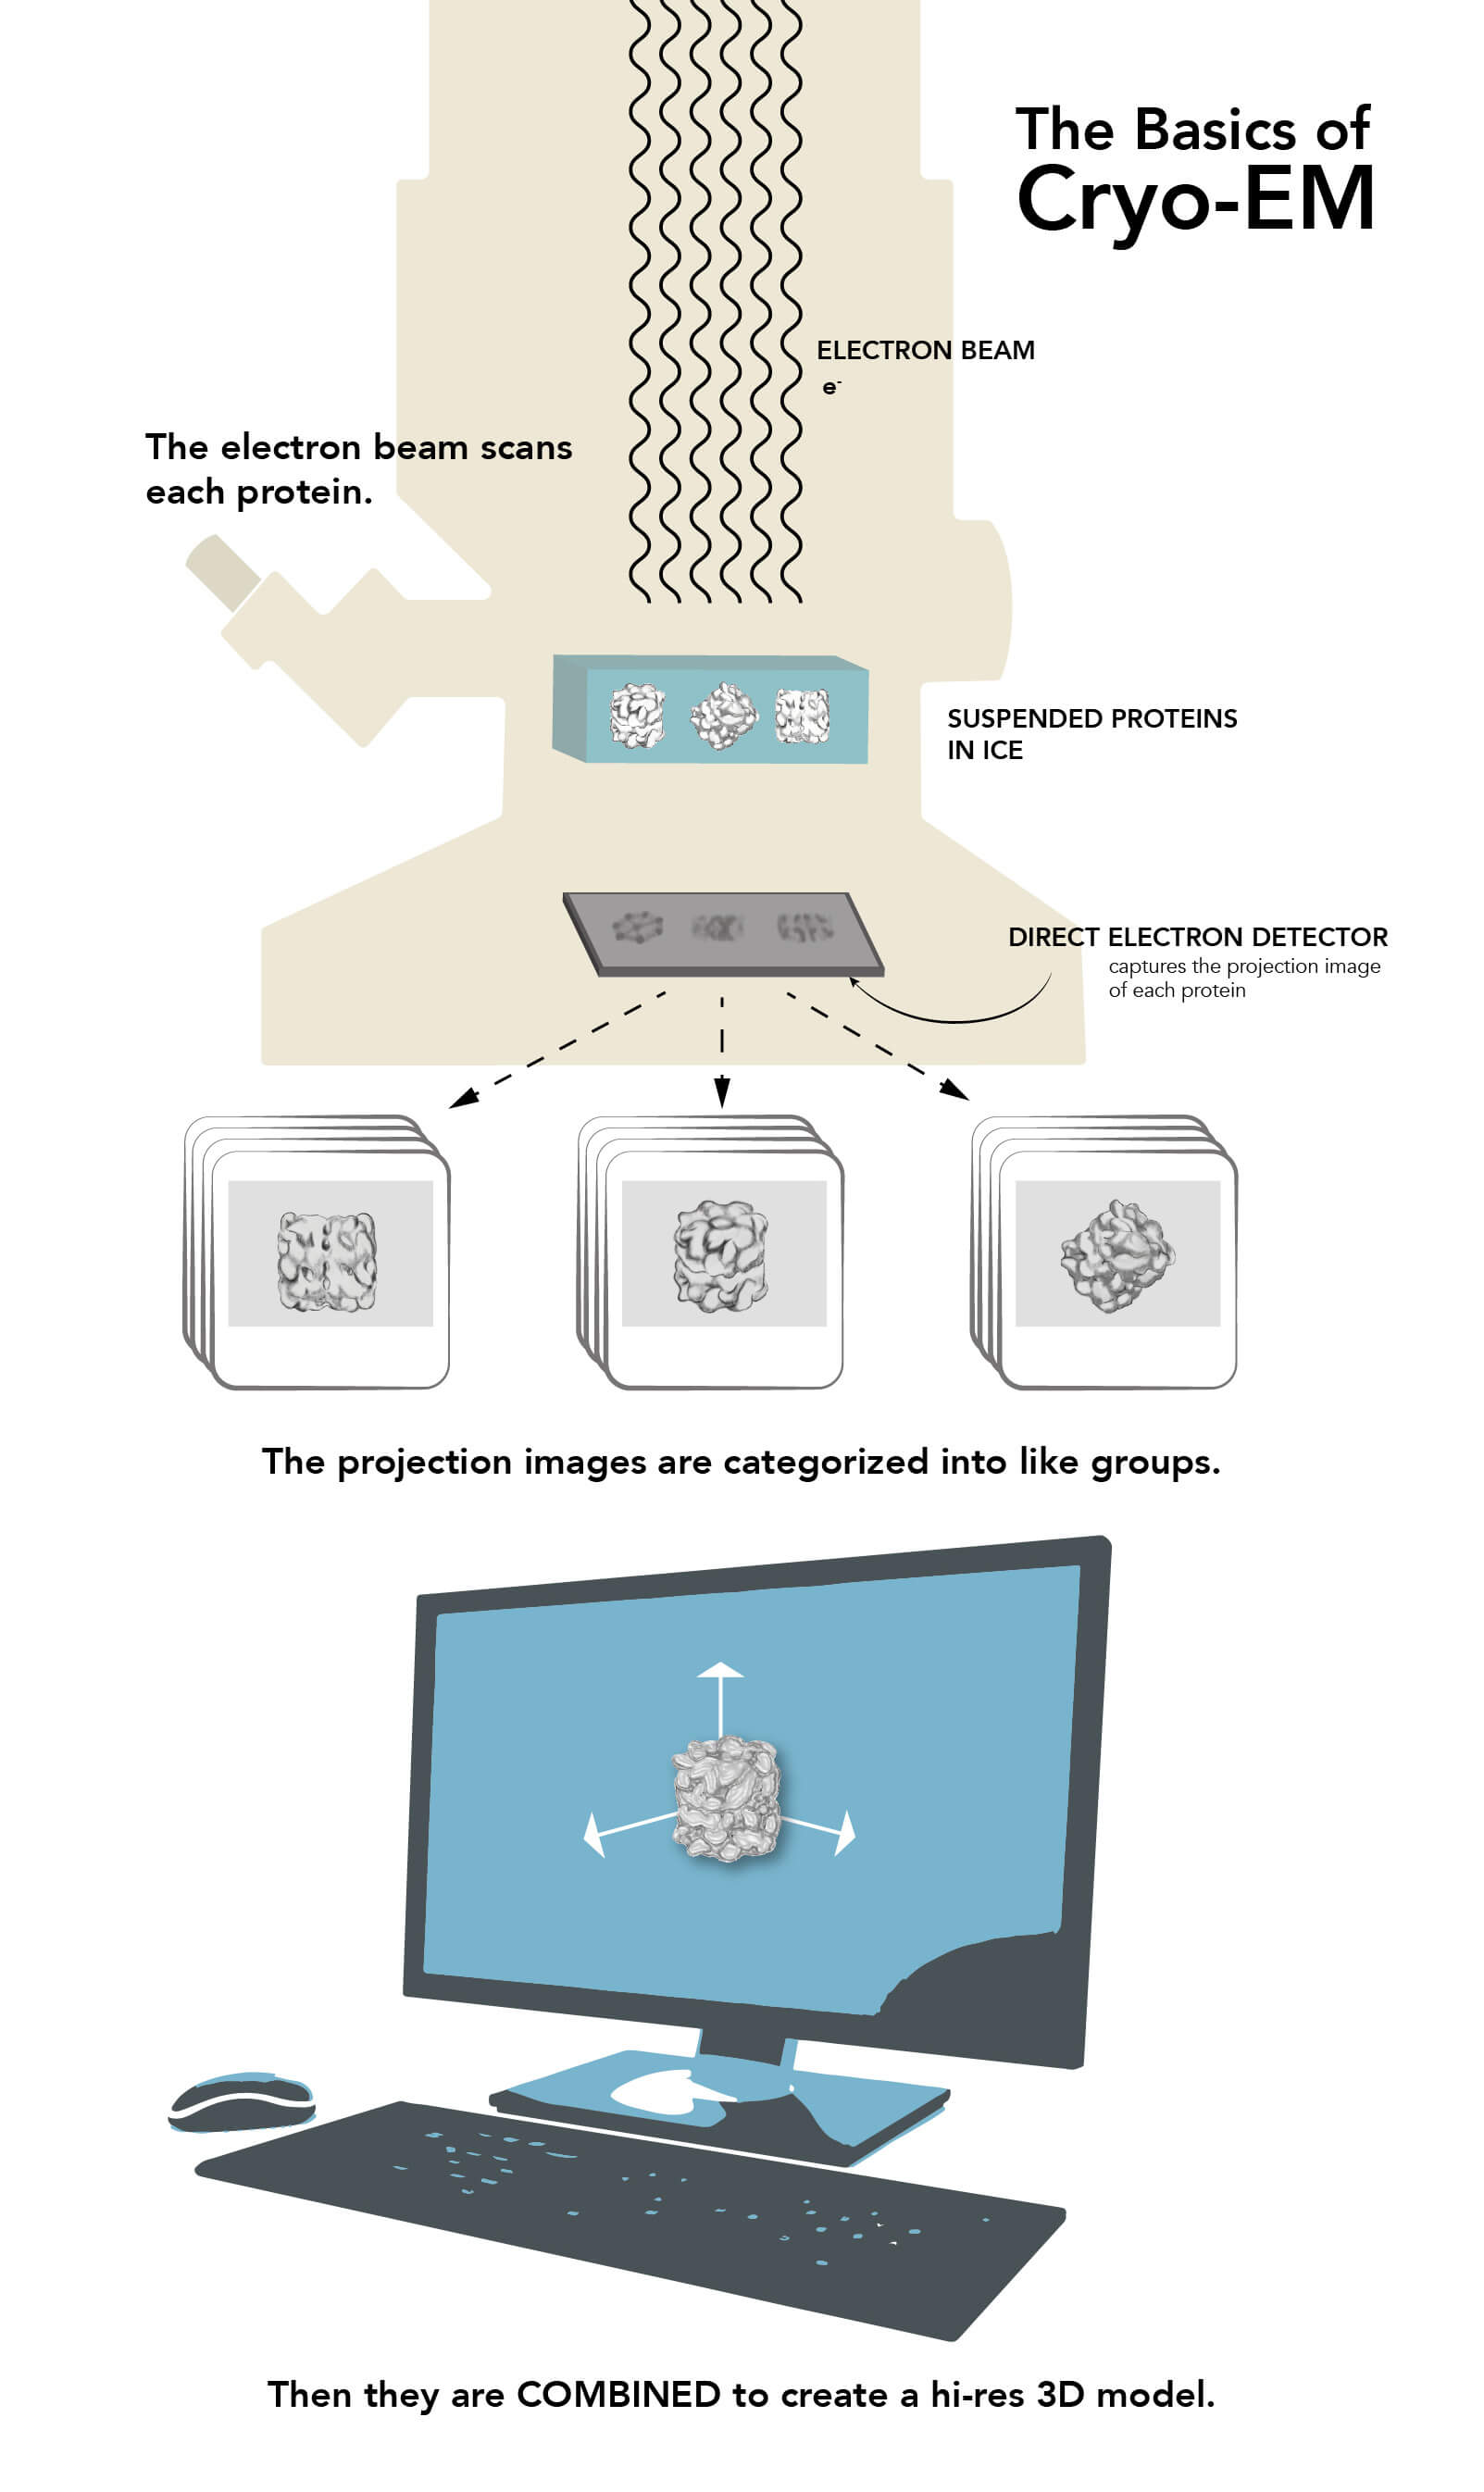 Image: This infographic explains the basics of cryo-EM.